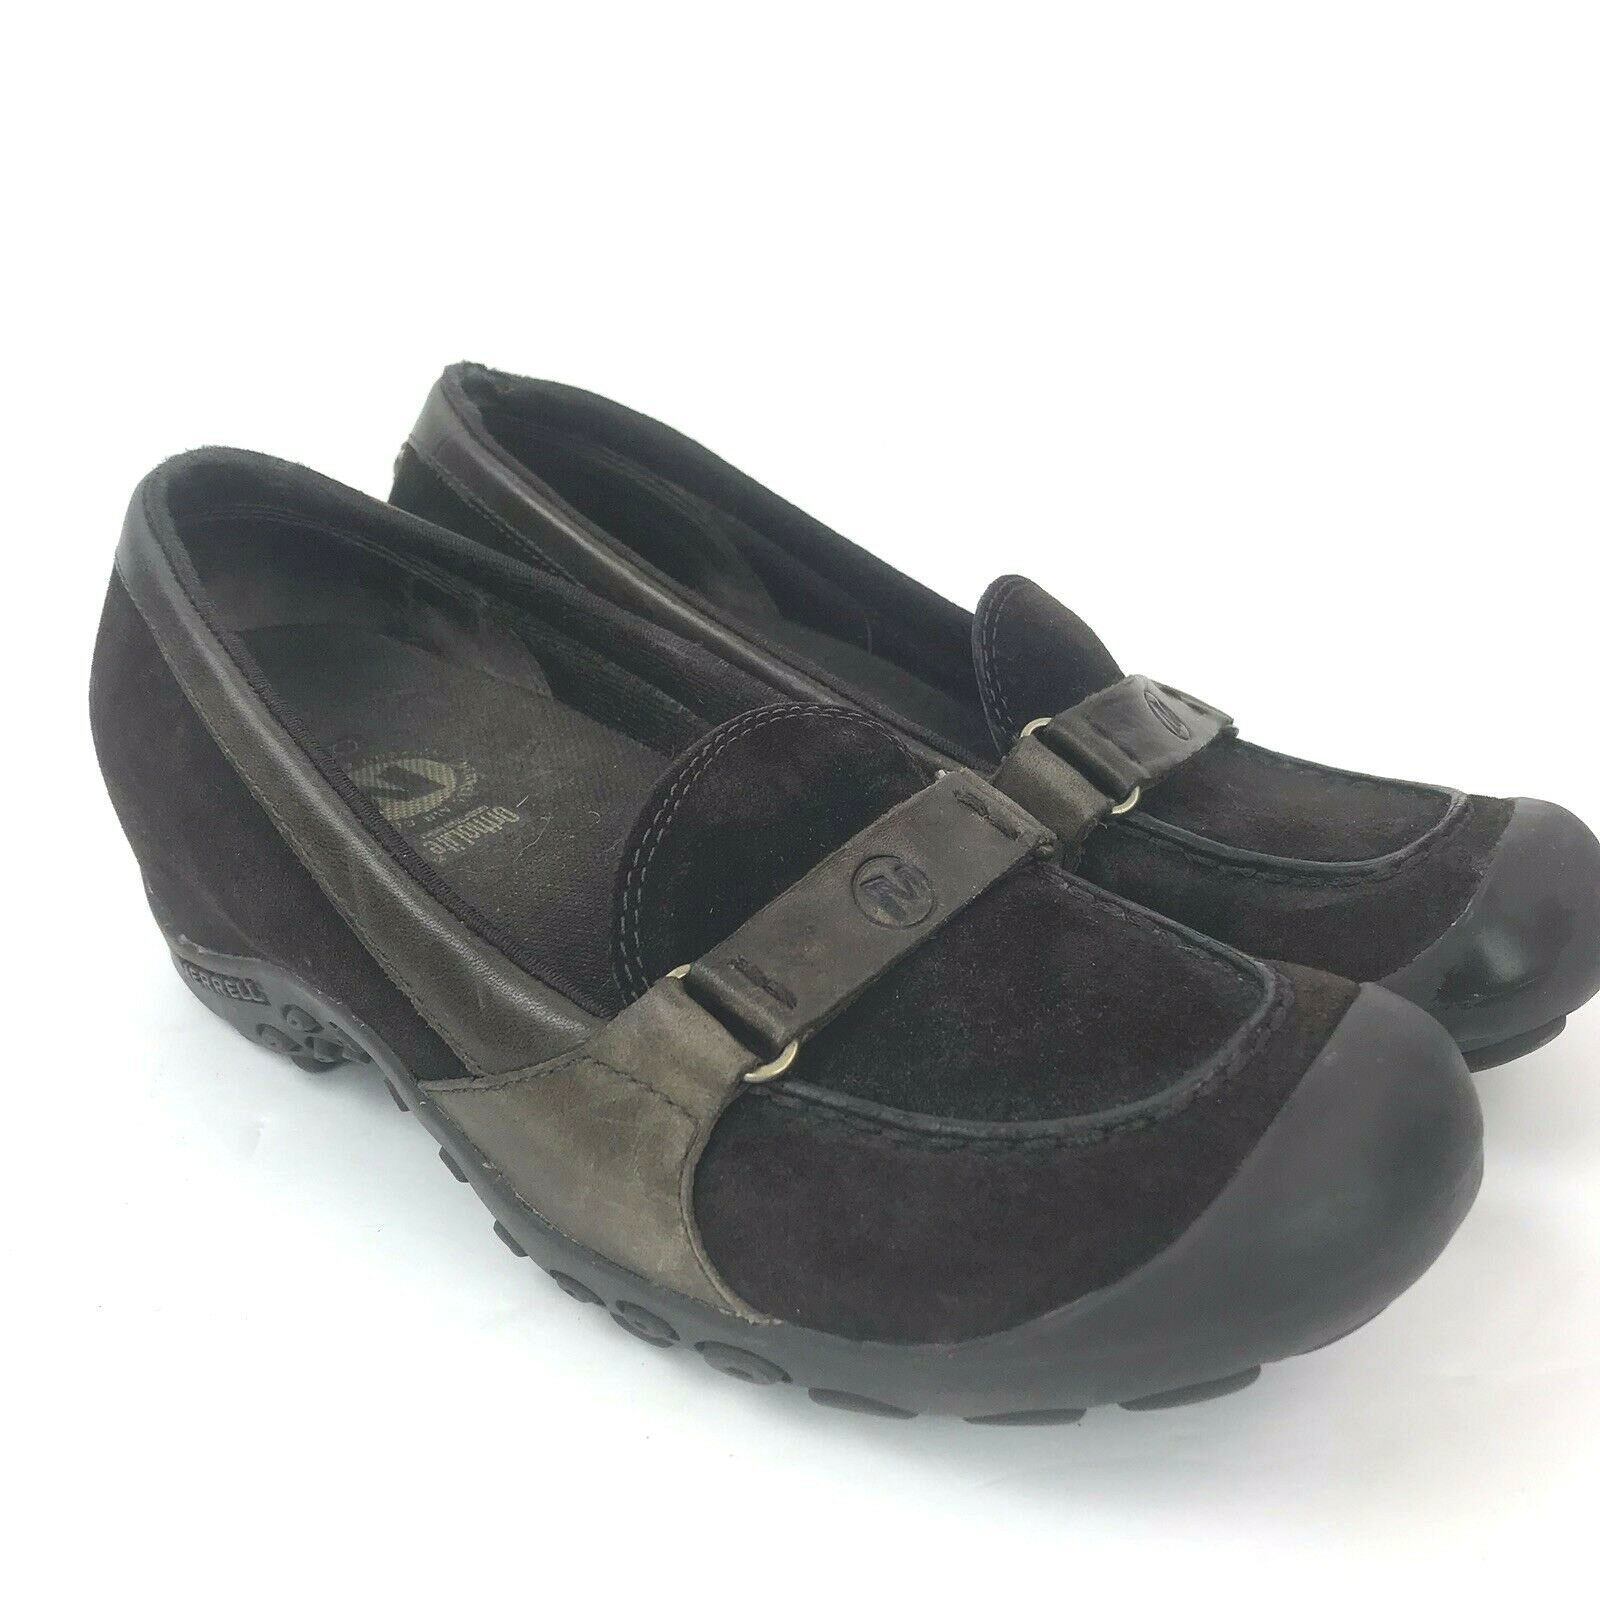 MERRELL Plaza Glide Chocolate Brown Suede Leather Ortholite Slip On shoes 6.5